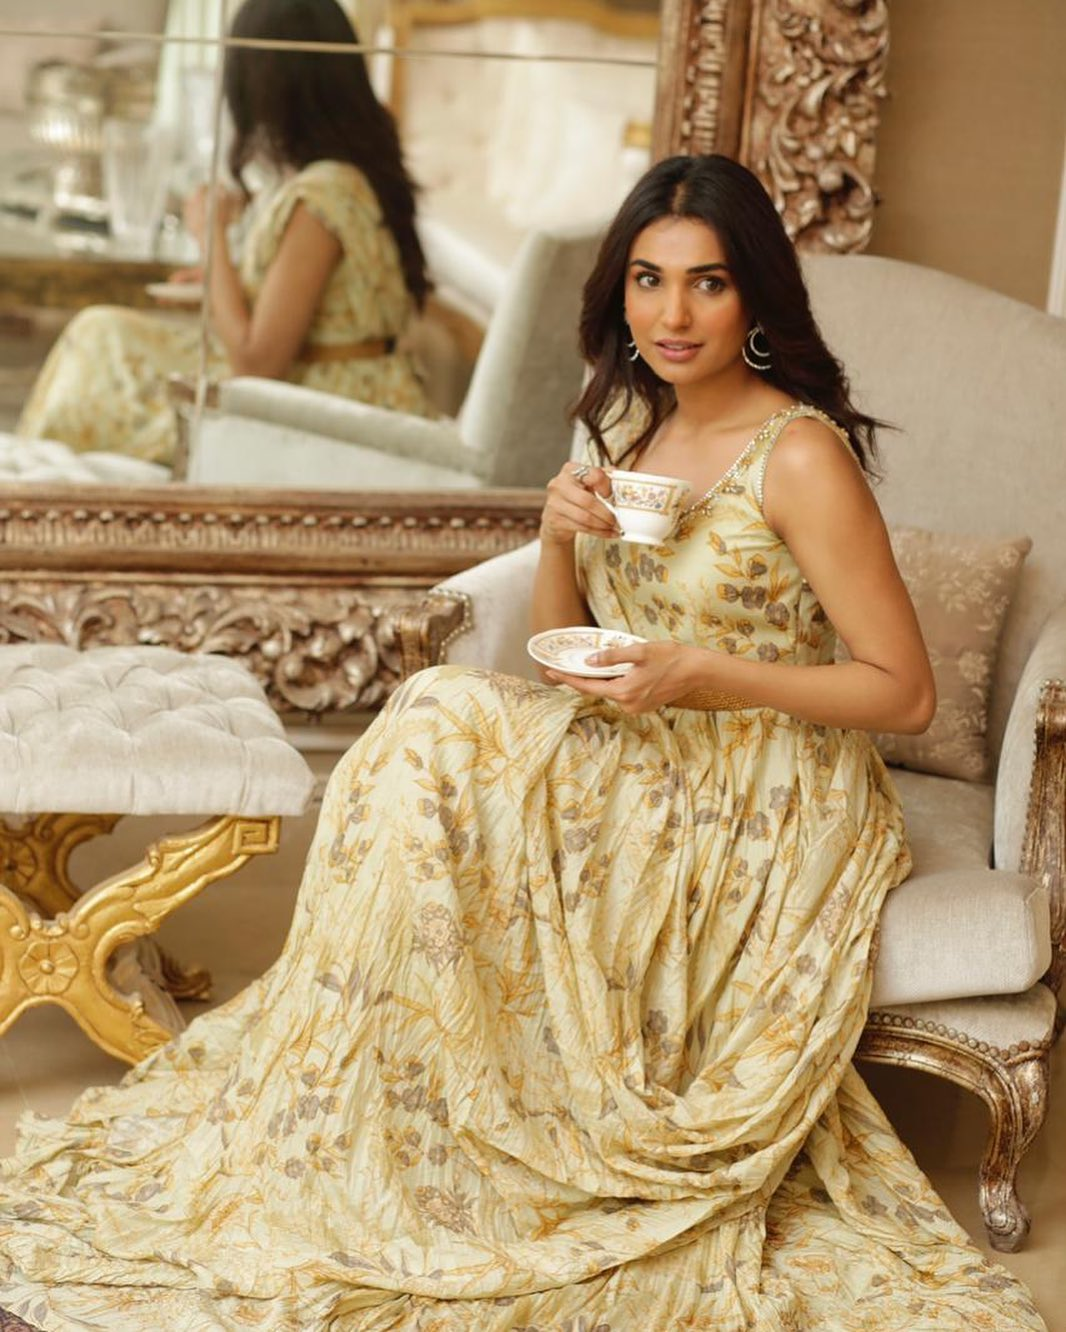 Actress Amna Ilyas Denied News of Getting Married with Actor Dawar Mahmood